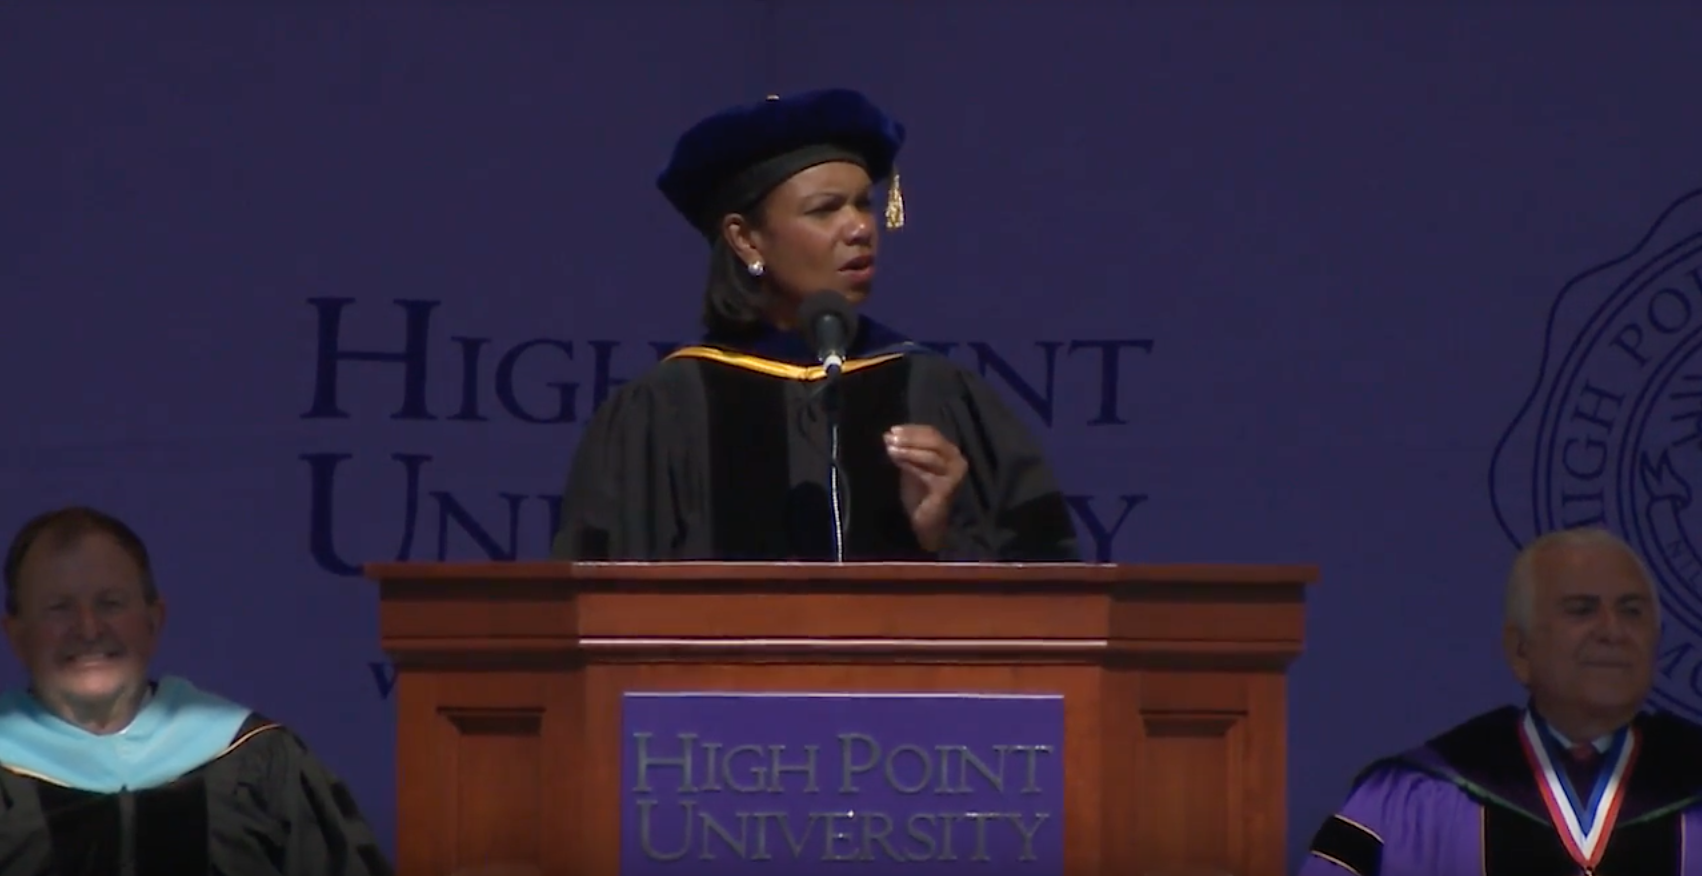 Condoleezza Rice to High Point's Class of 2016: 'Don't let anyone else define your passion'